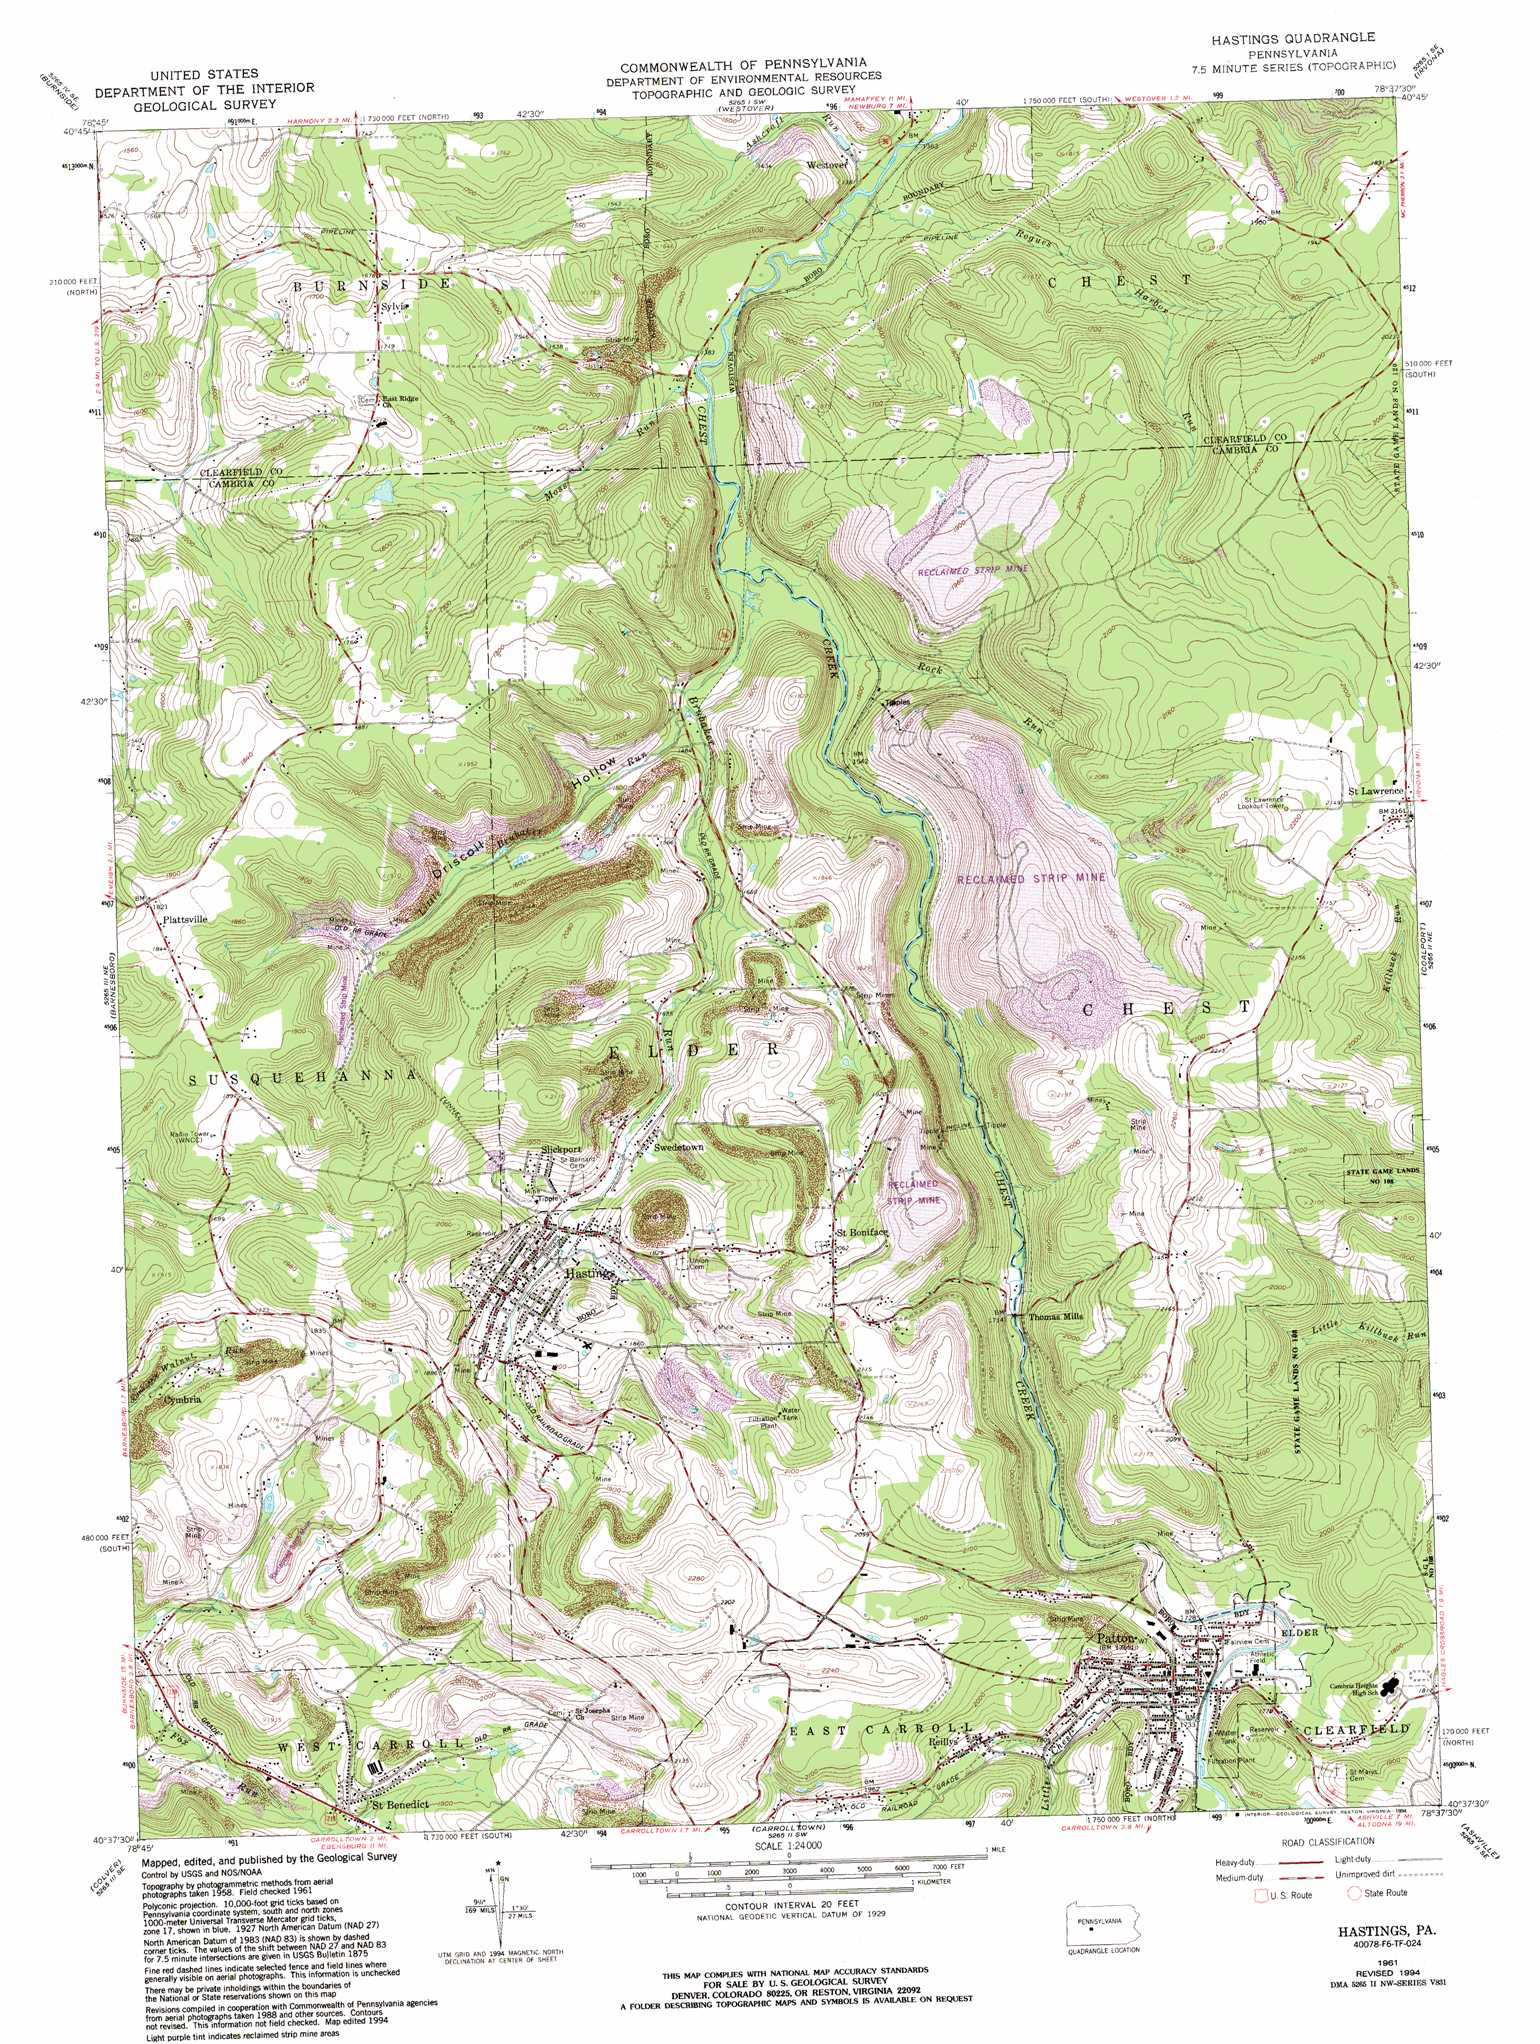 Hastings topographic map, PA - USGS Topo Quad 40078f6 on